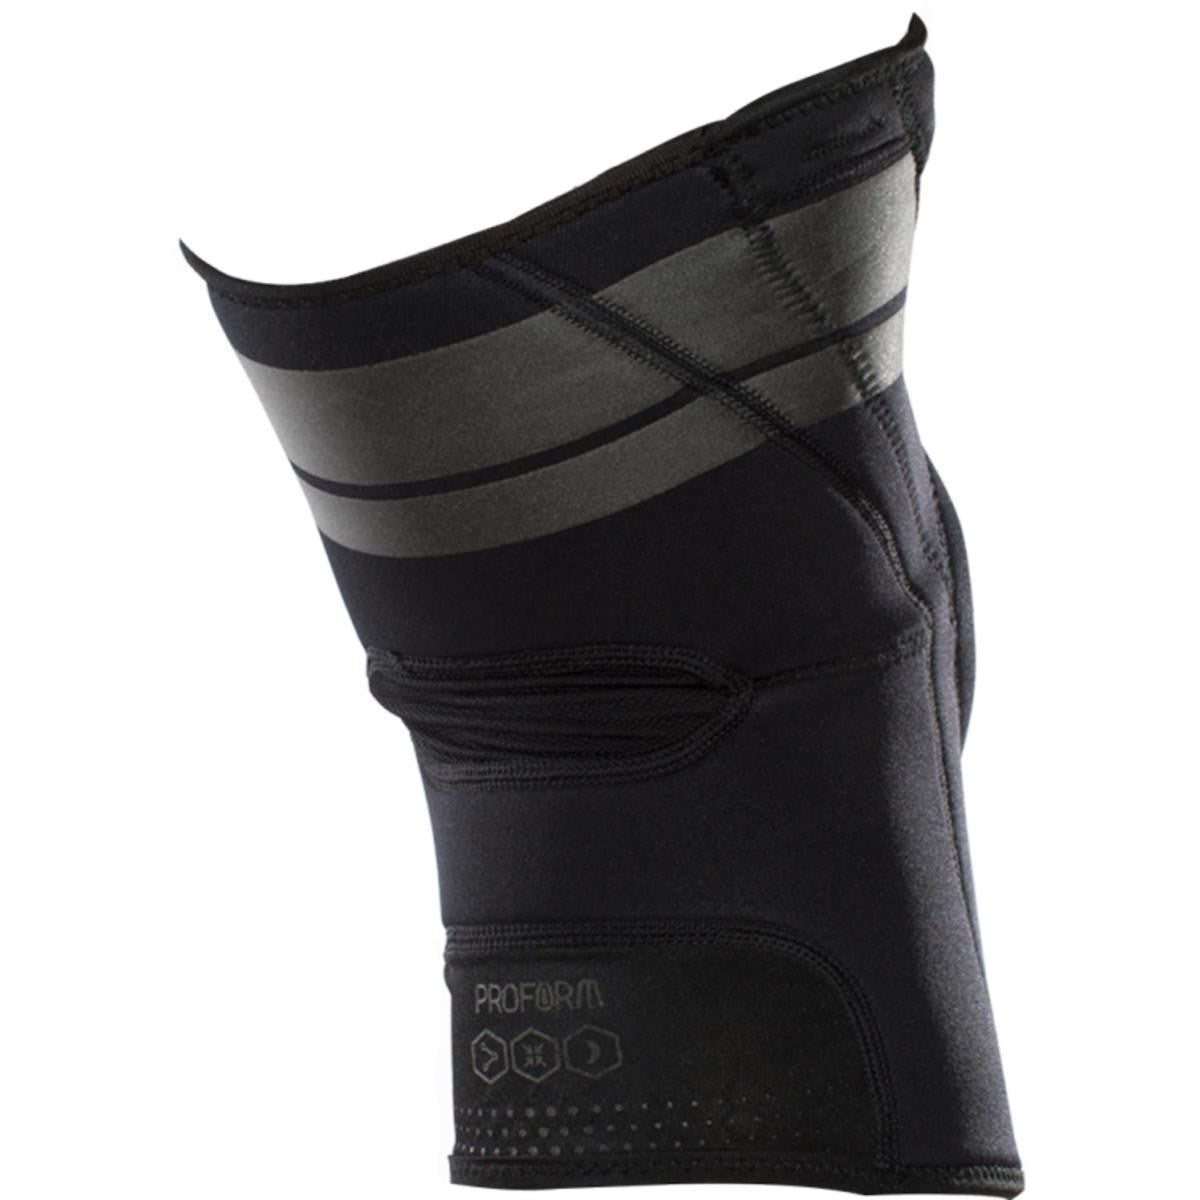 DonJoy Proform Knee Sleeve (4mm, Open Patella)